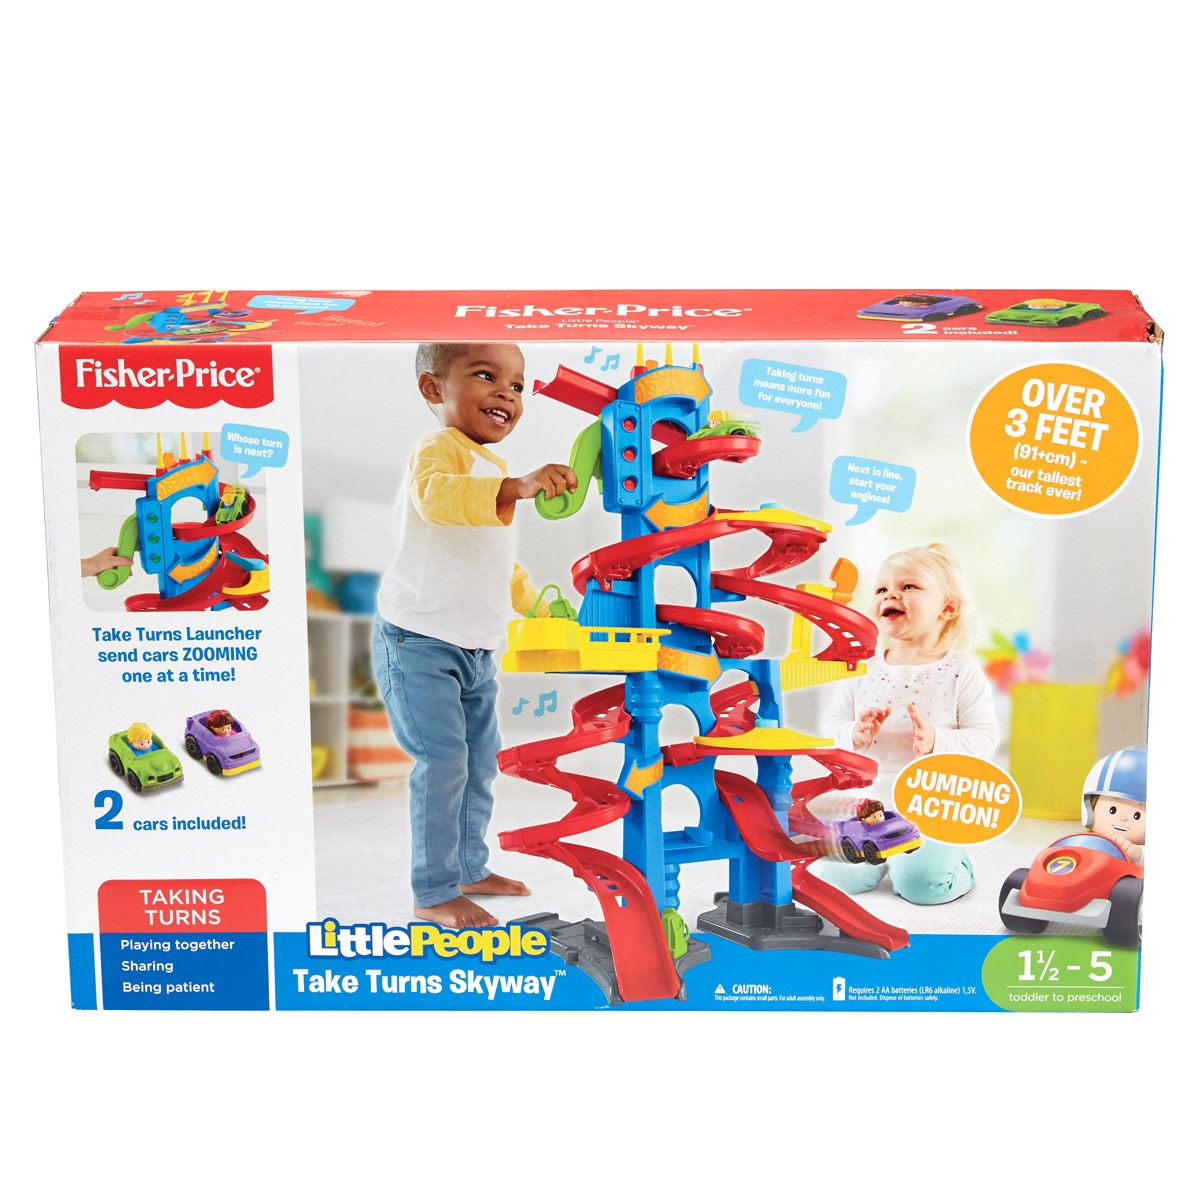 Little People Gran Pista Rascacielos Fisher Price